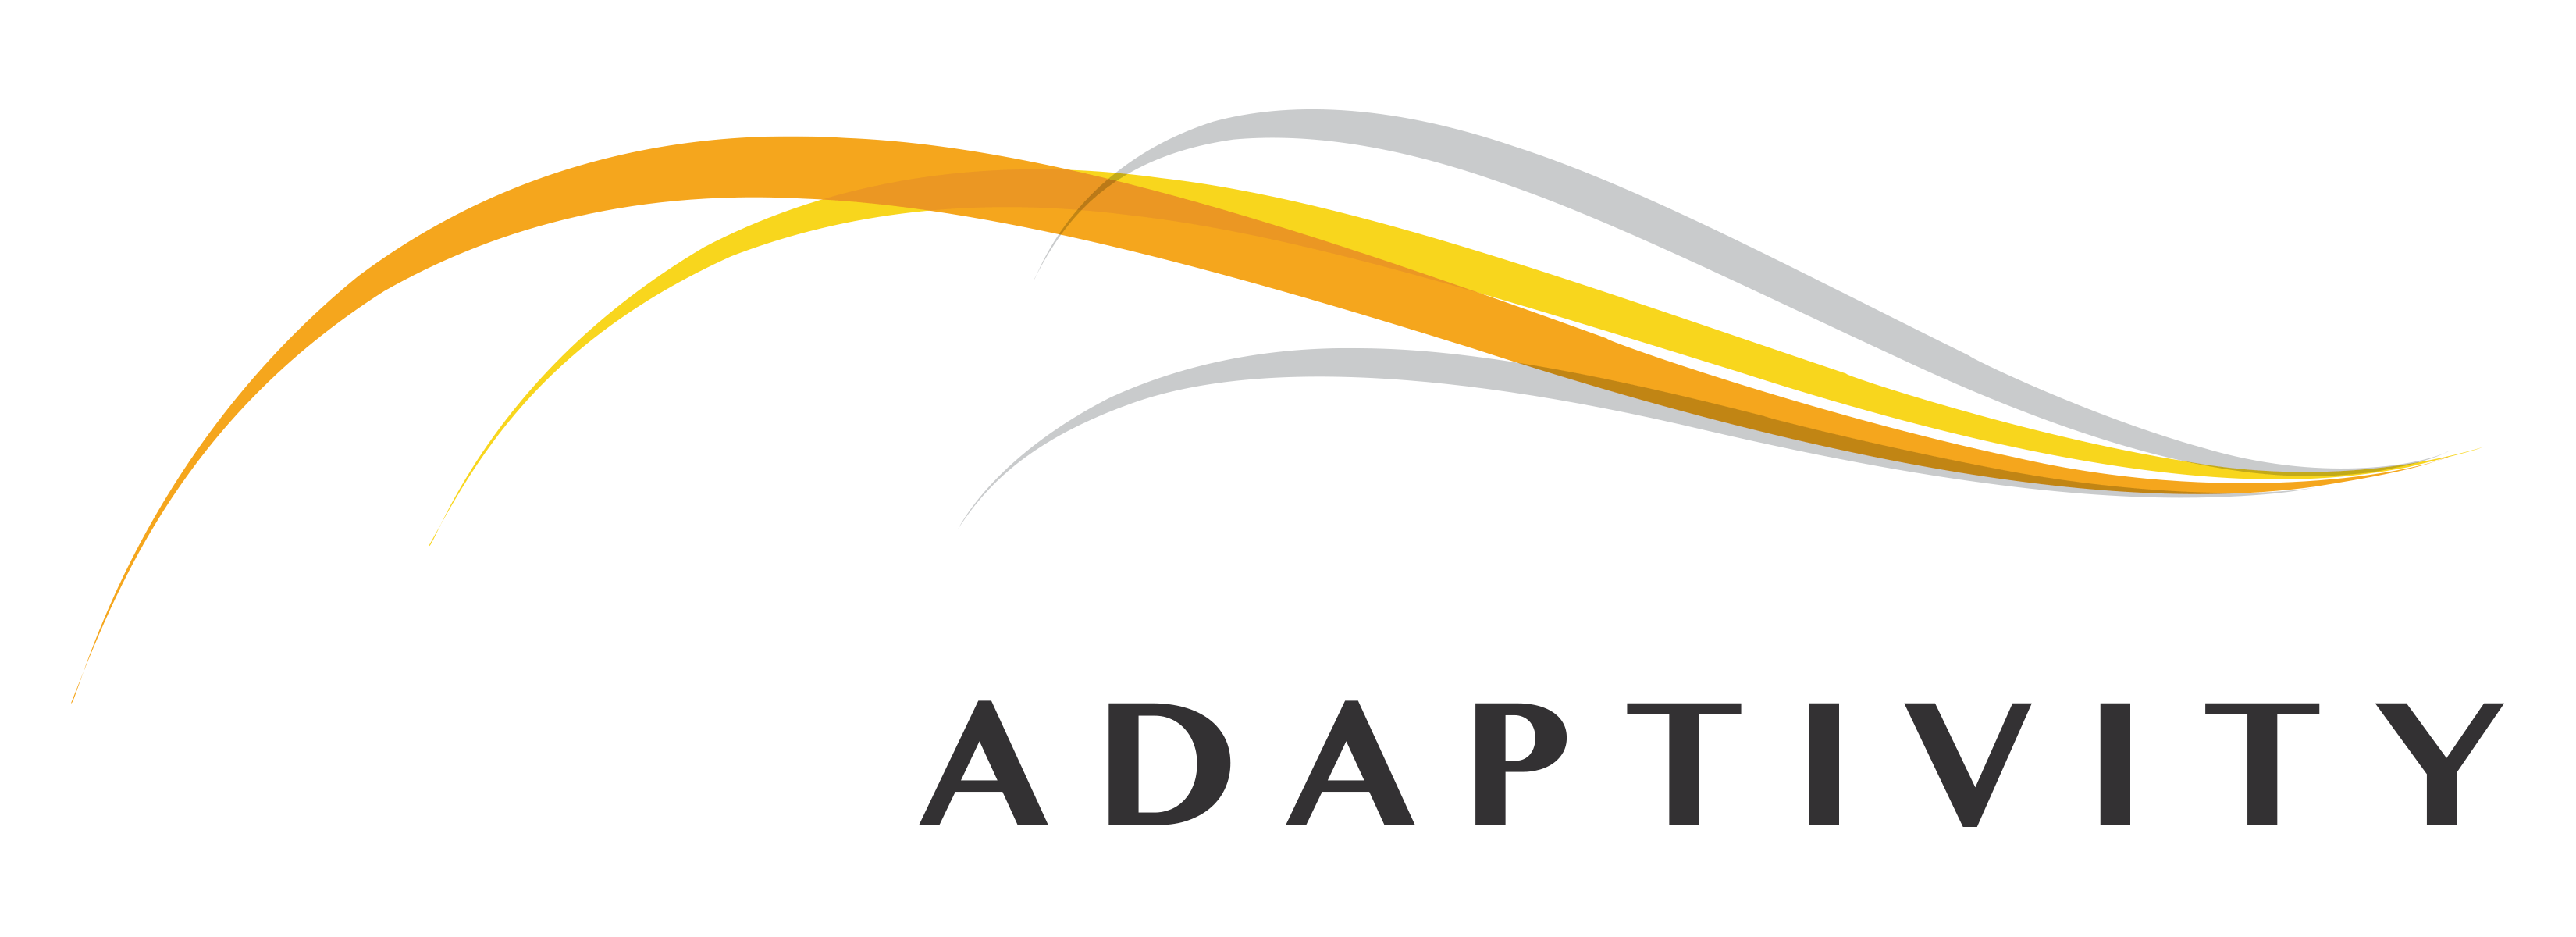 Adaptivity Logo